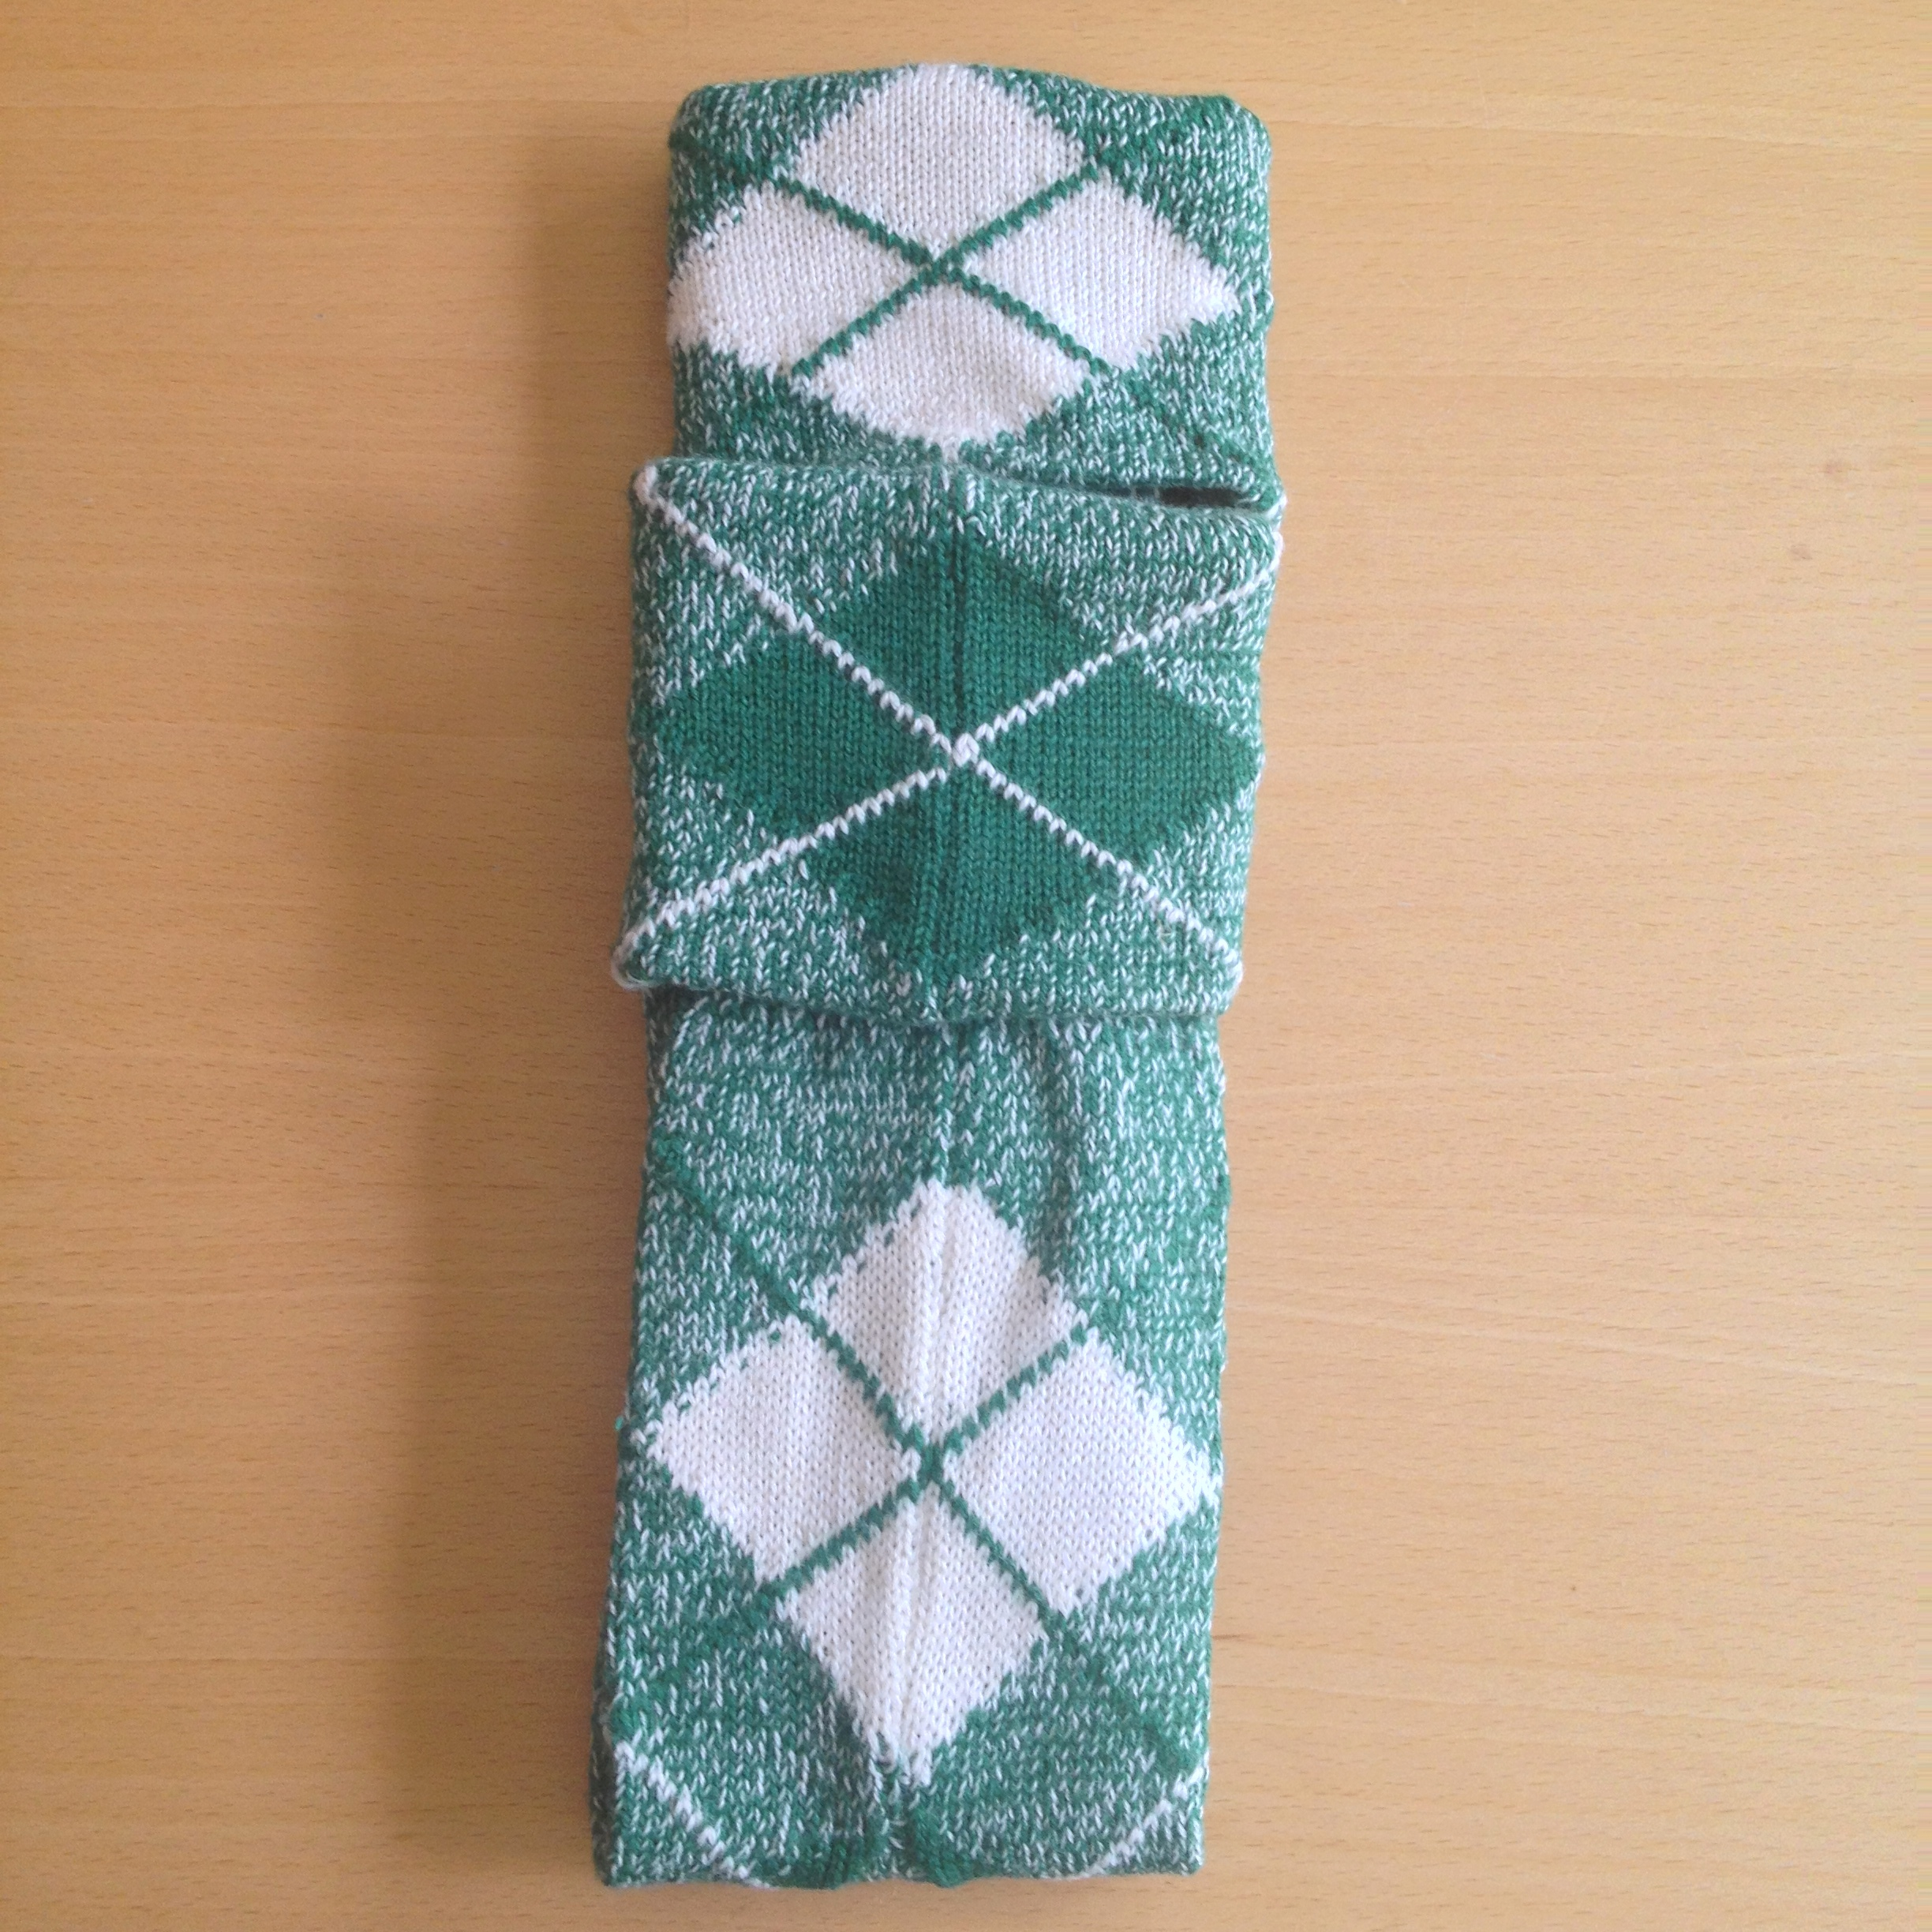 Knitting Pattern For Highland Dance Socks : Highland Dancing Hose (Socks) - Emerald Green - Small